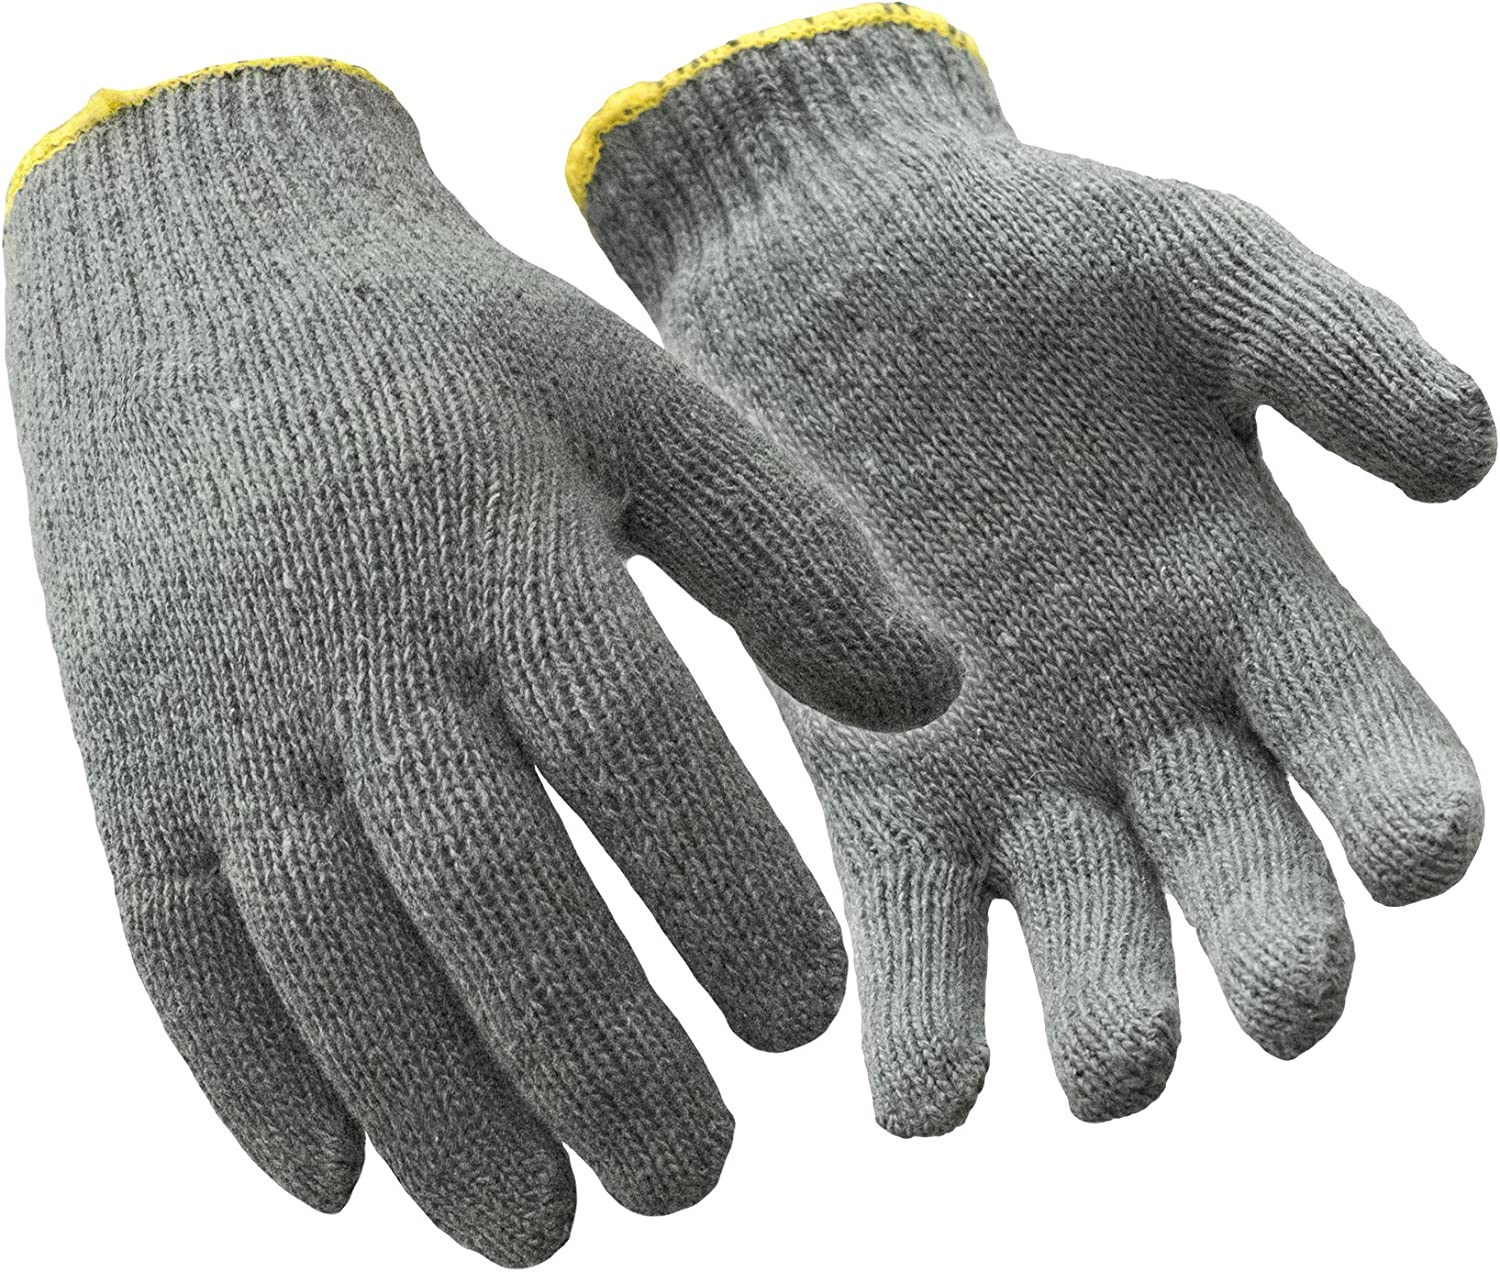 RefrigiWear Lightweight Cotton String Knit Glove Liners Natural 12 Pairs